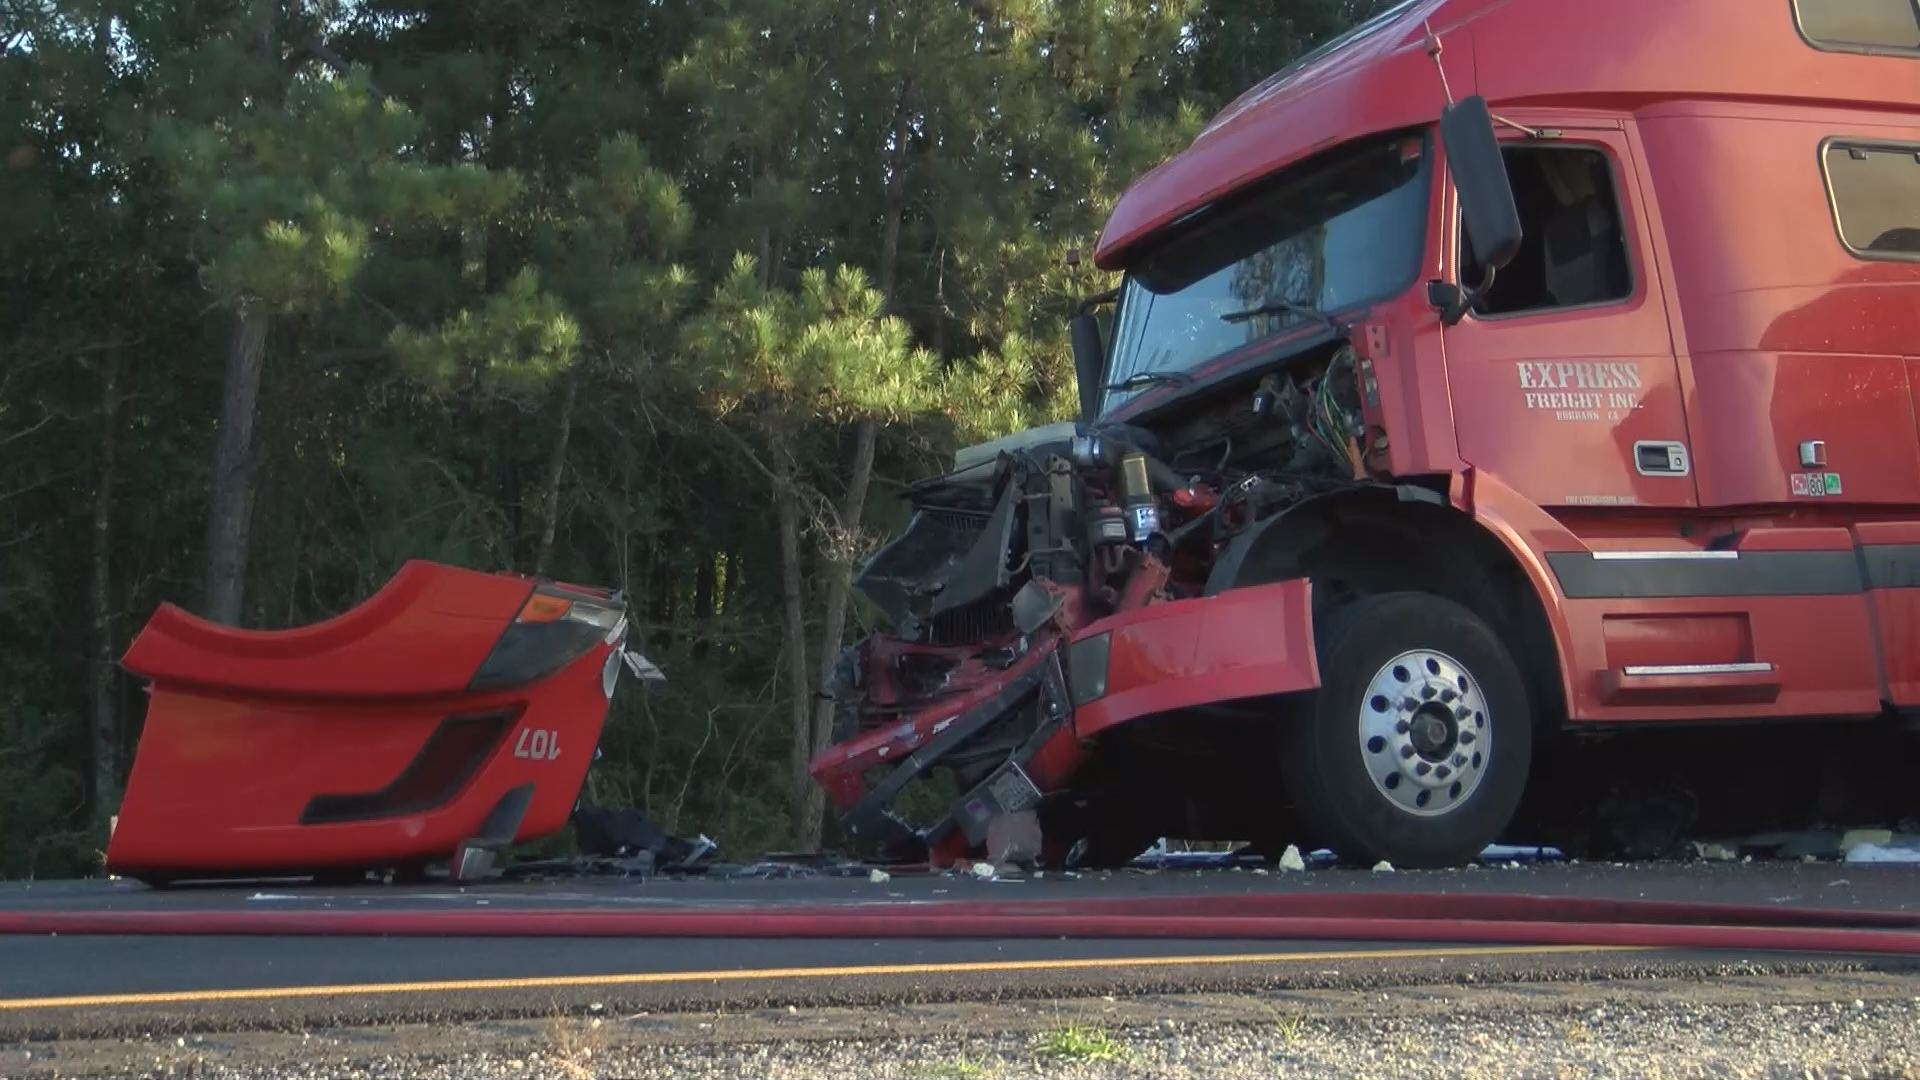 Mississippi jefferson county harriston - Hancock County Ms One Person Died After A Wreck Involving Three 18 Wheelers On Interstate 10 In Bay St Louis On Monday Oct 19 2015